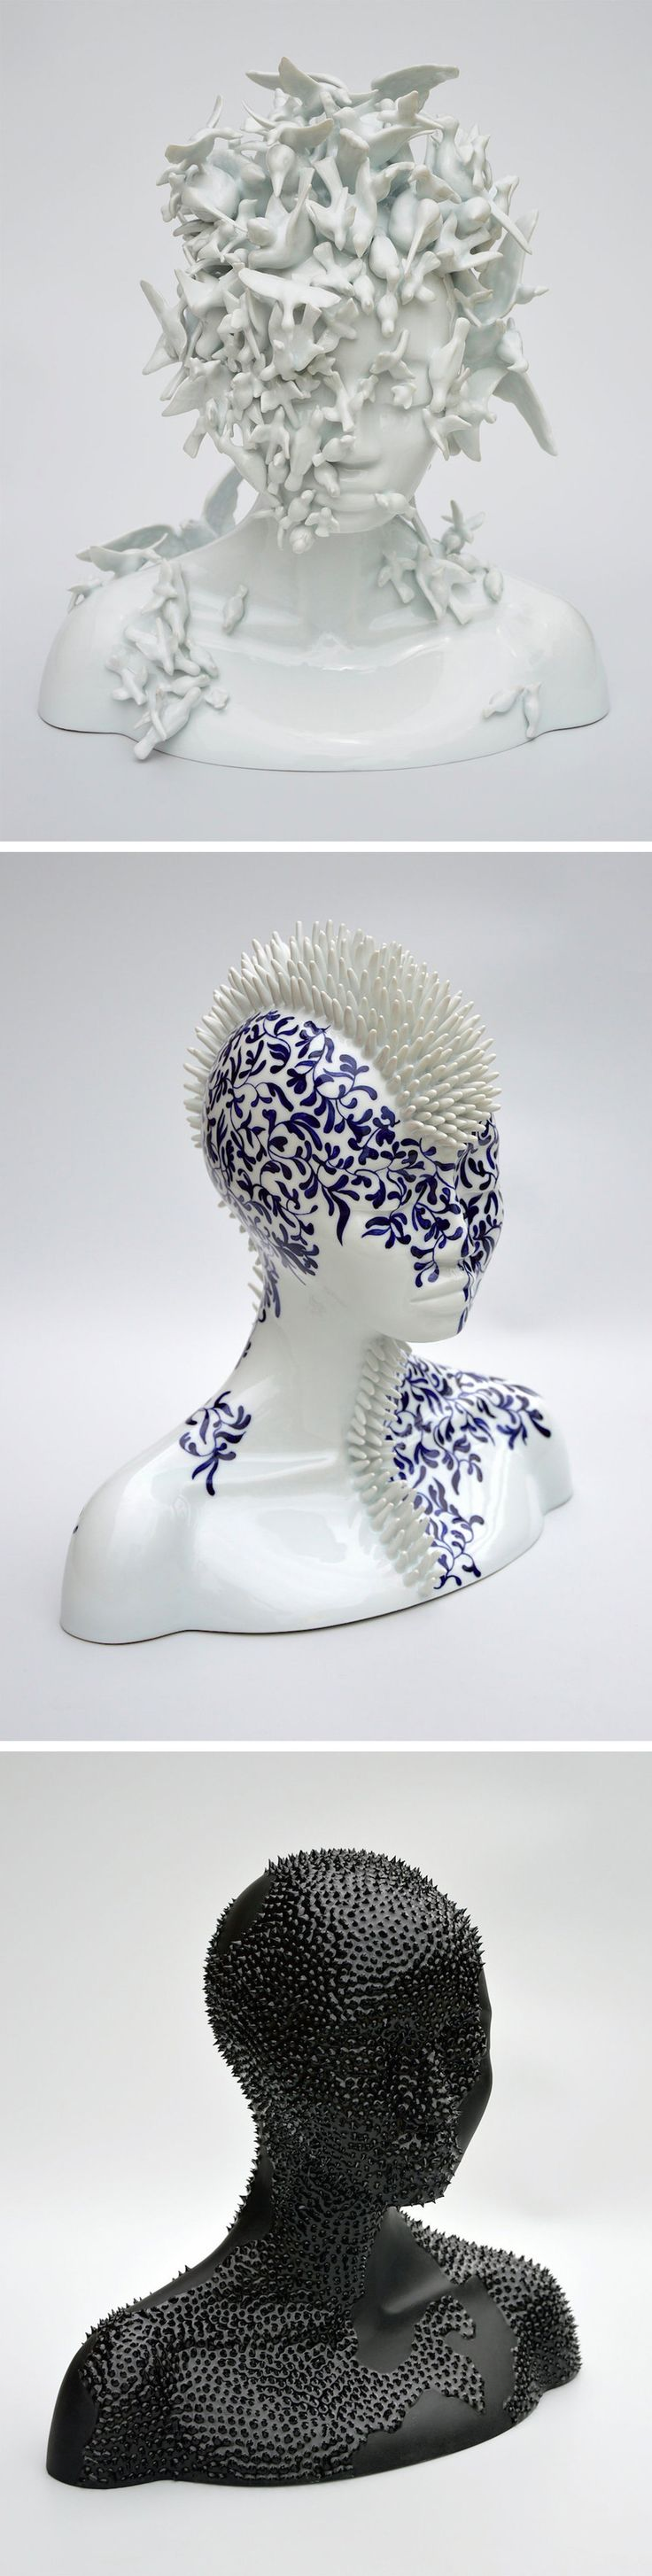 Porcelain Female Forms That Blur the Line Between Humans and Nature by Juliette…